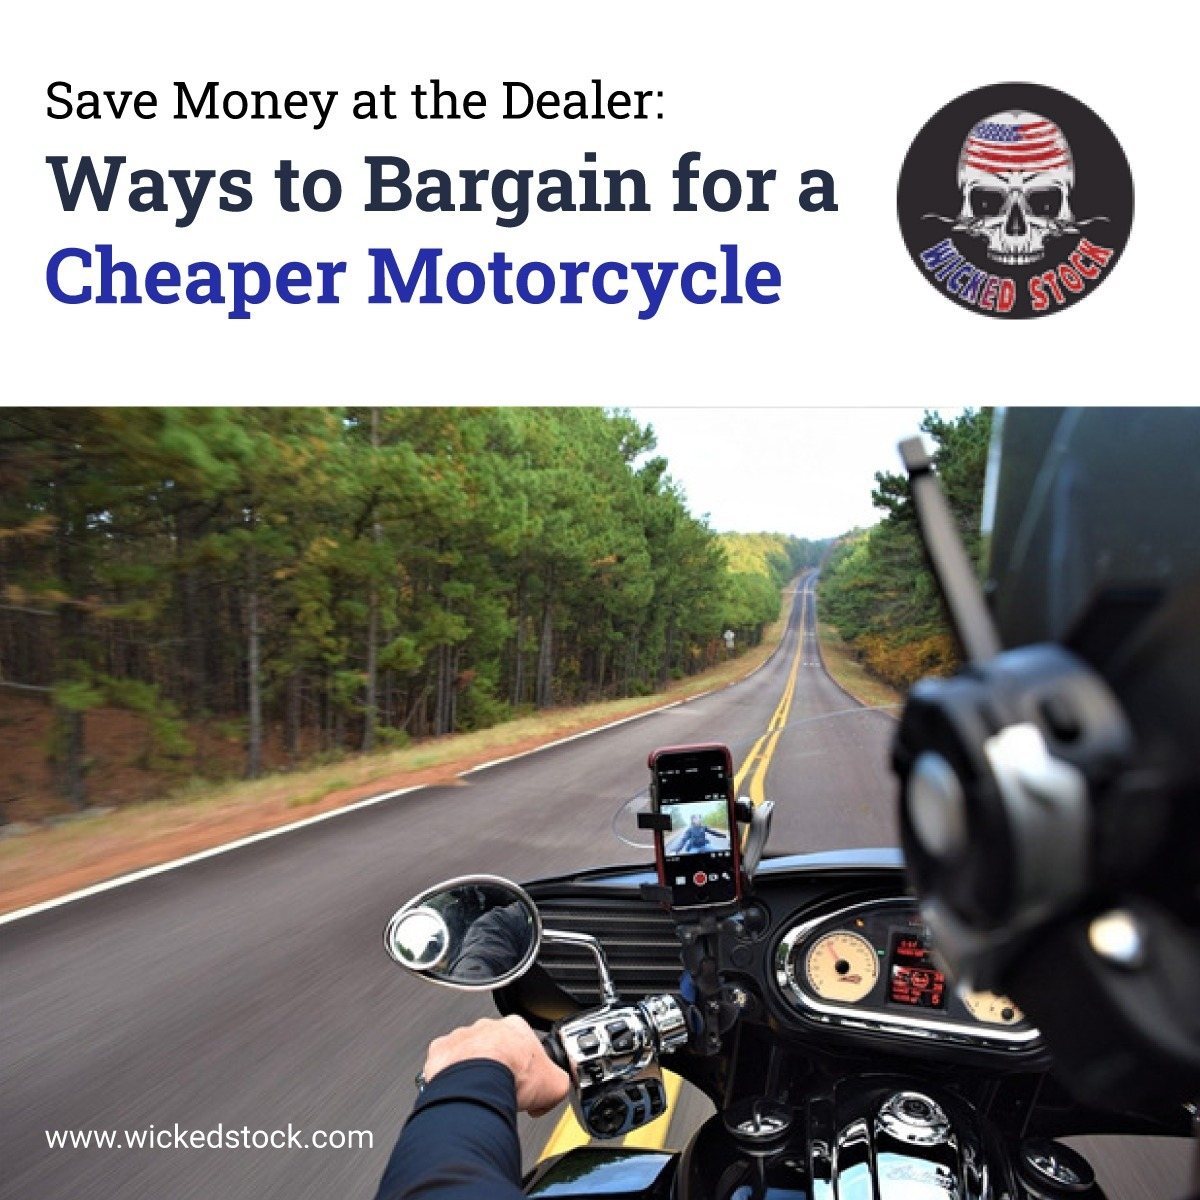 Save Money at the Dealer: Ways to Bargain for a Cheaper Motorcycle